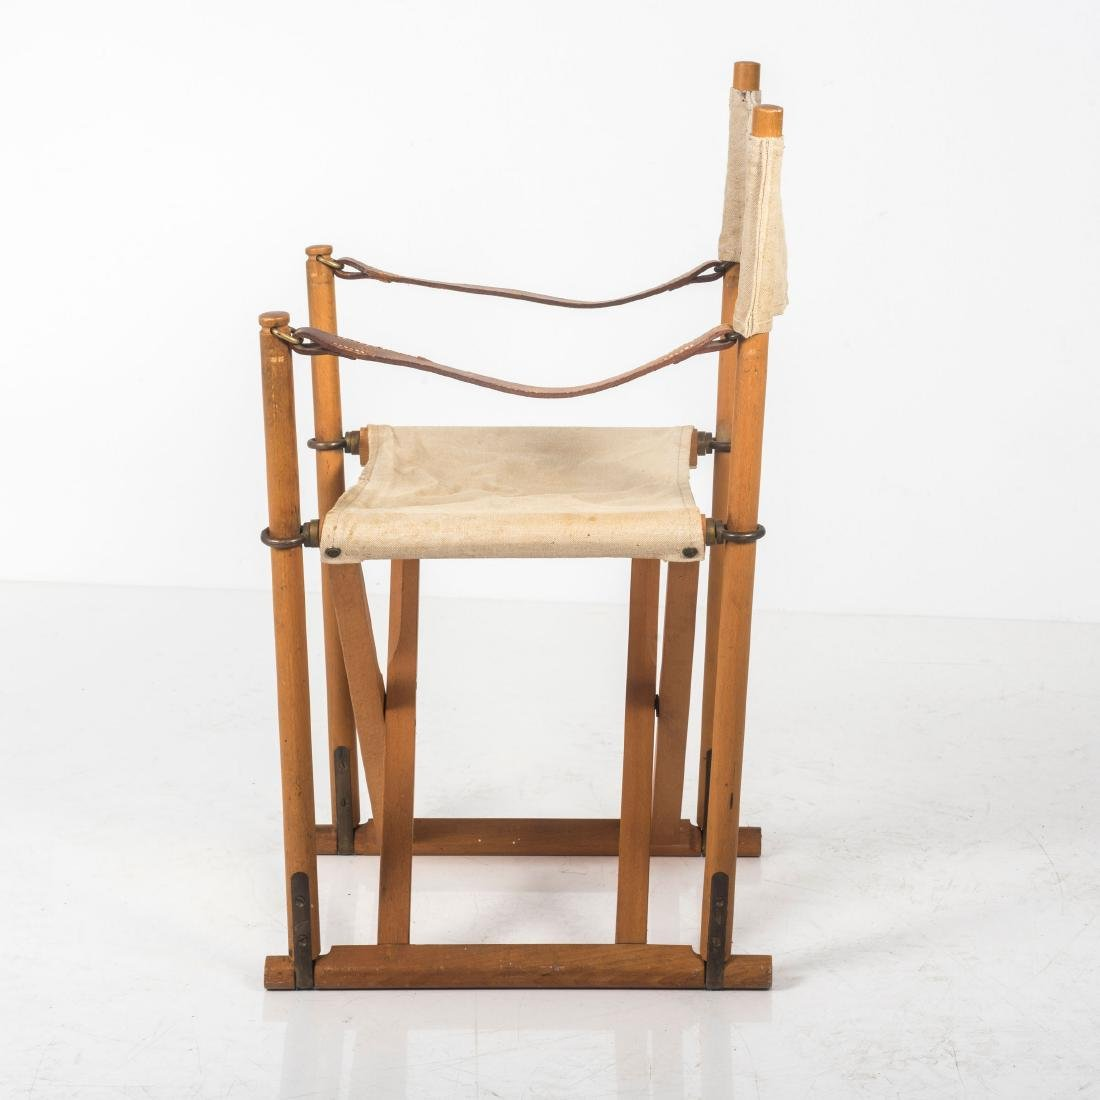 'MK16' child's folding chair, 1932 - 5